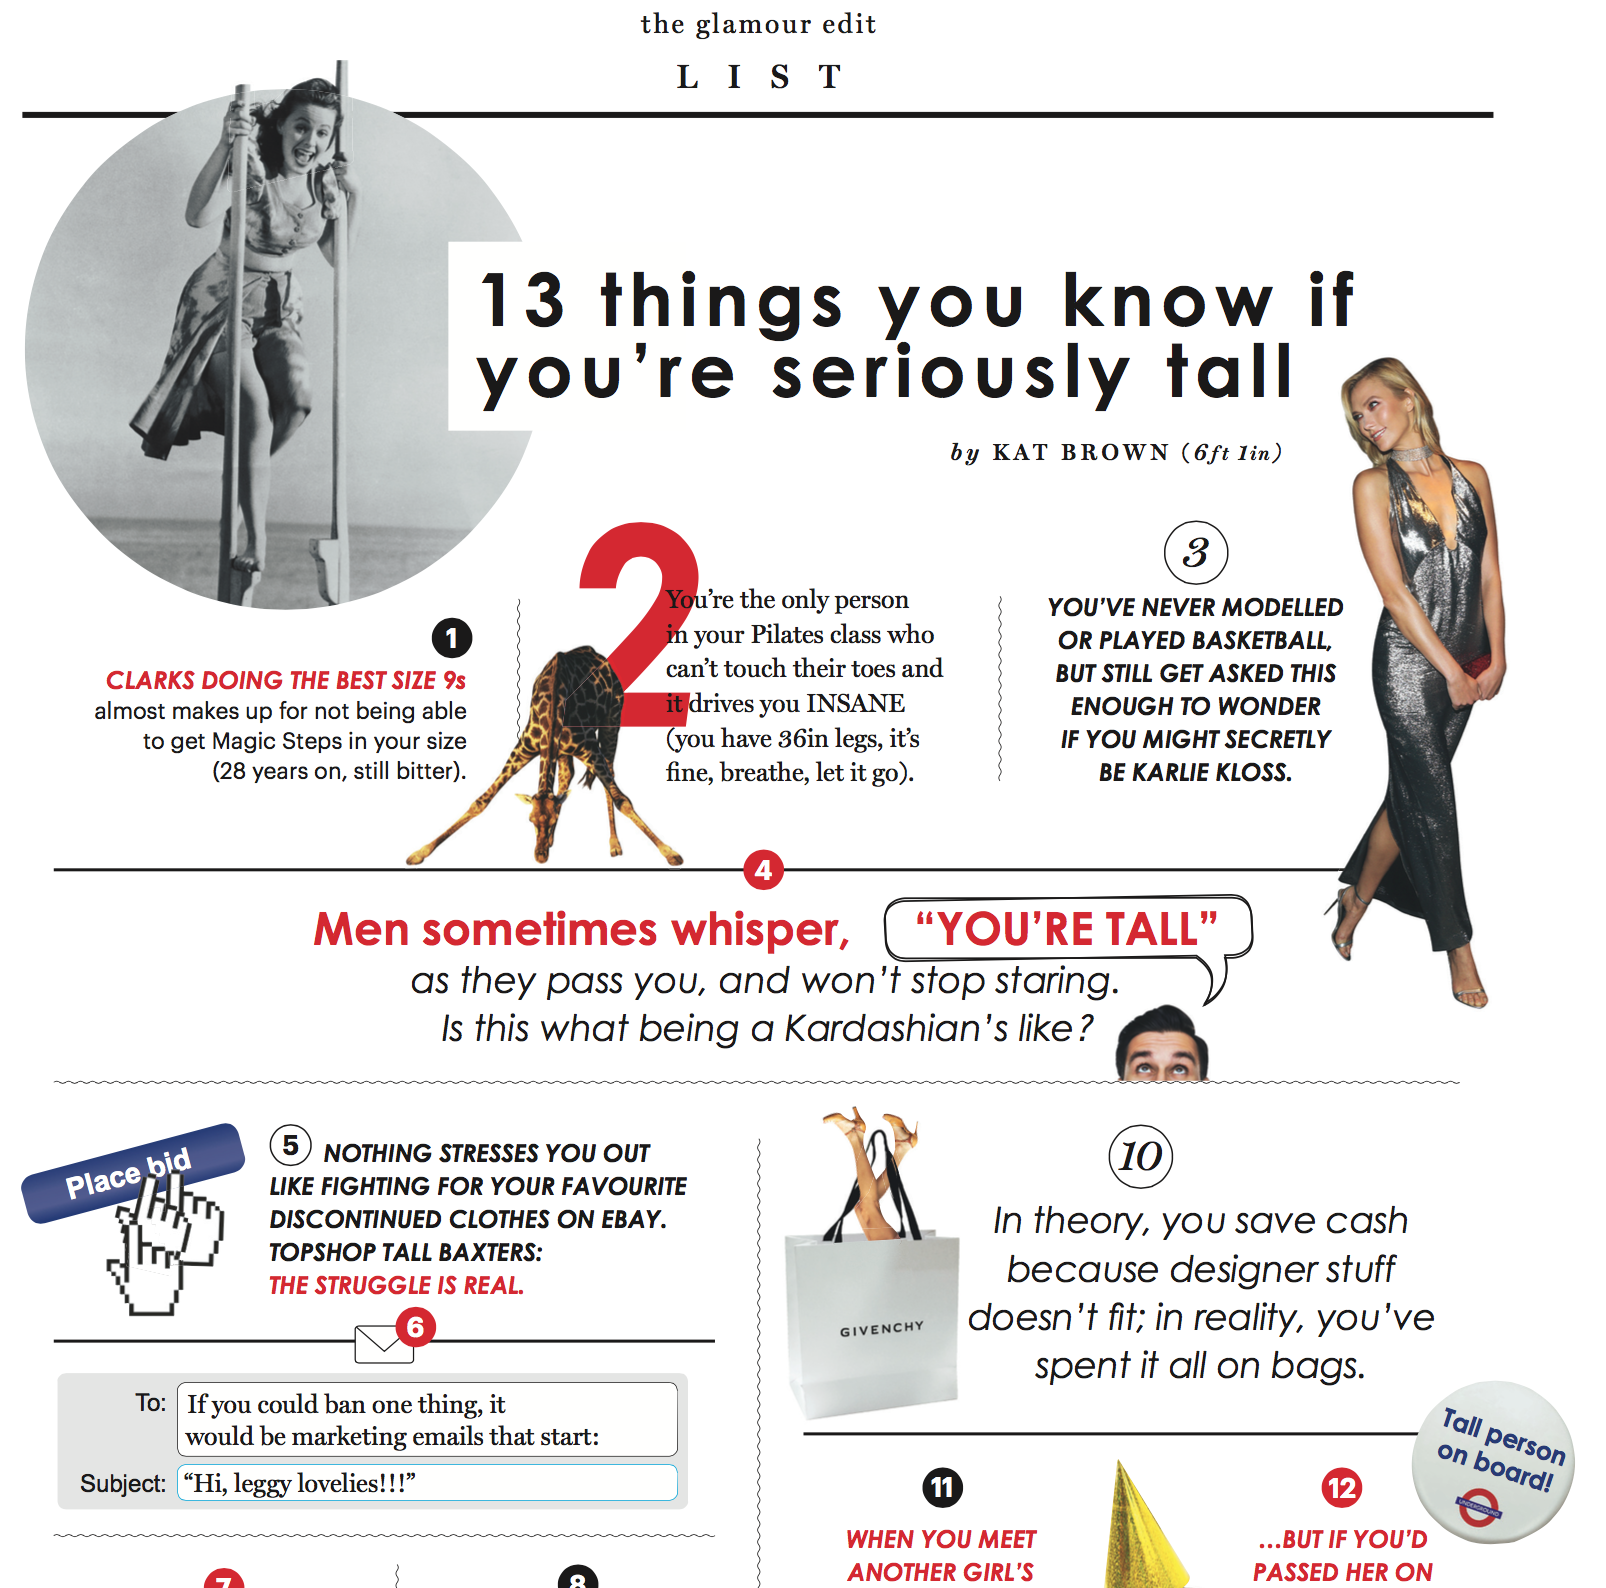 13 things you know if you're seriously tall - GLAMOUR